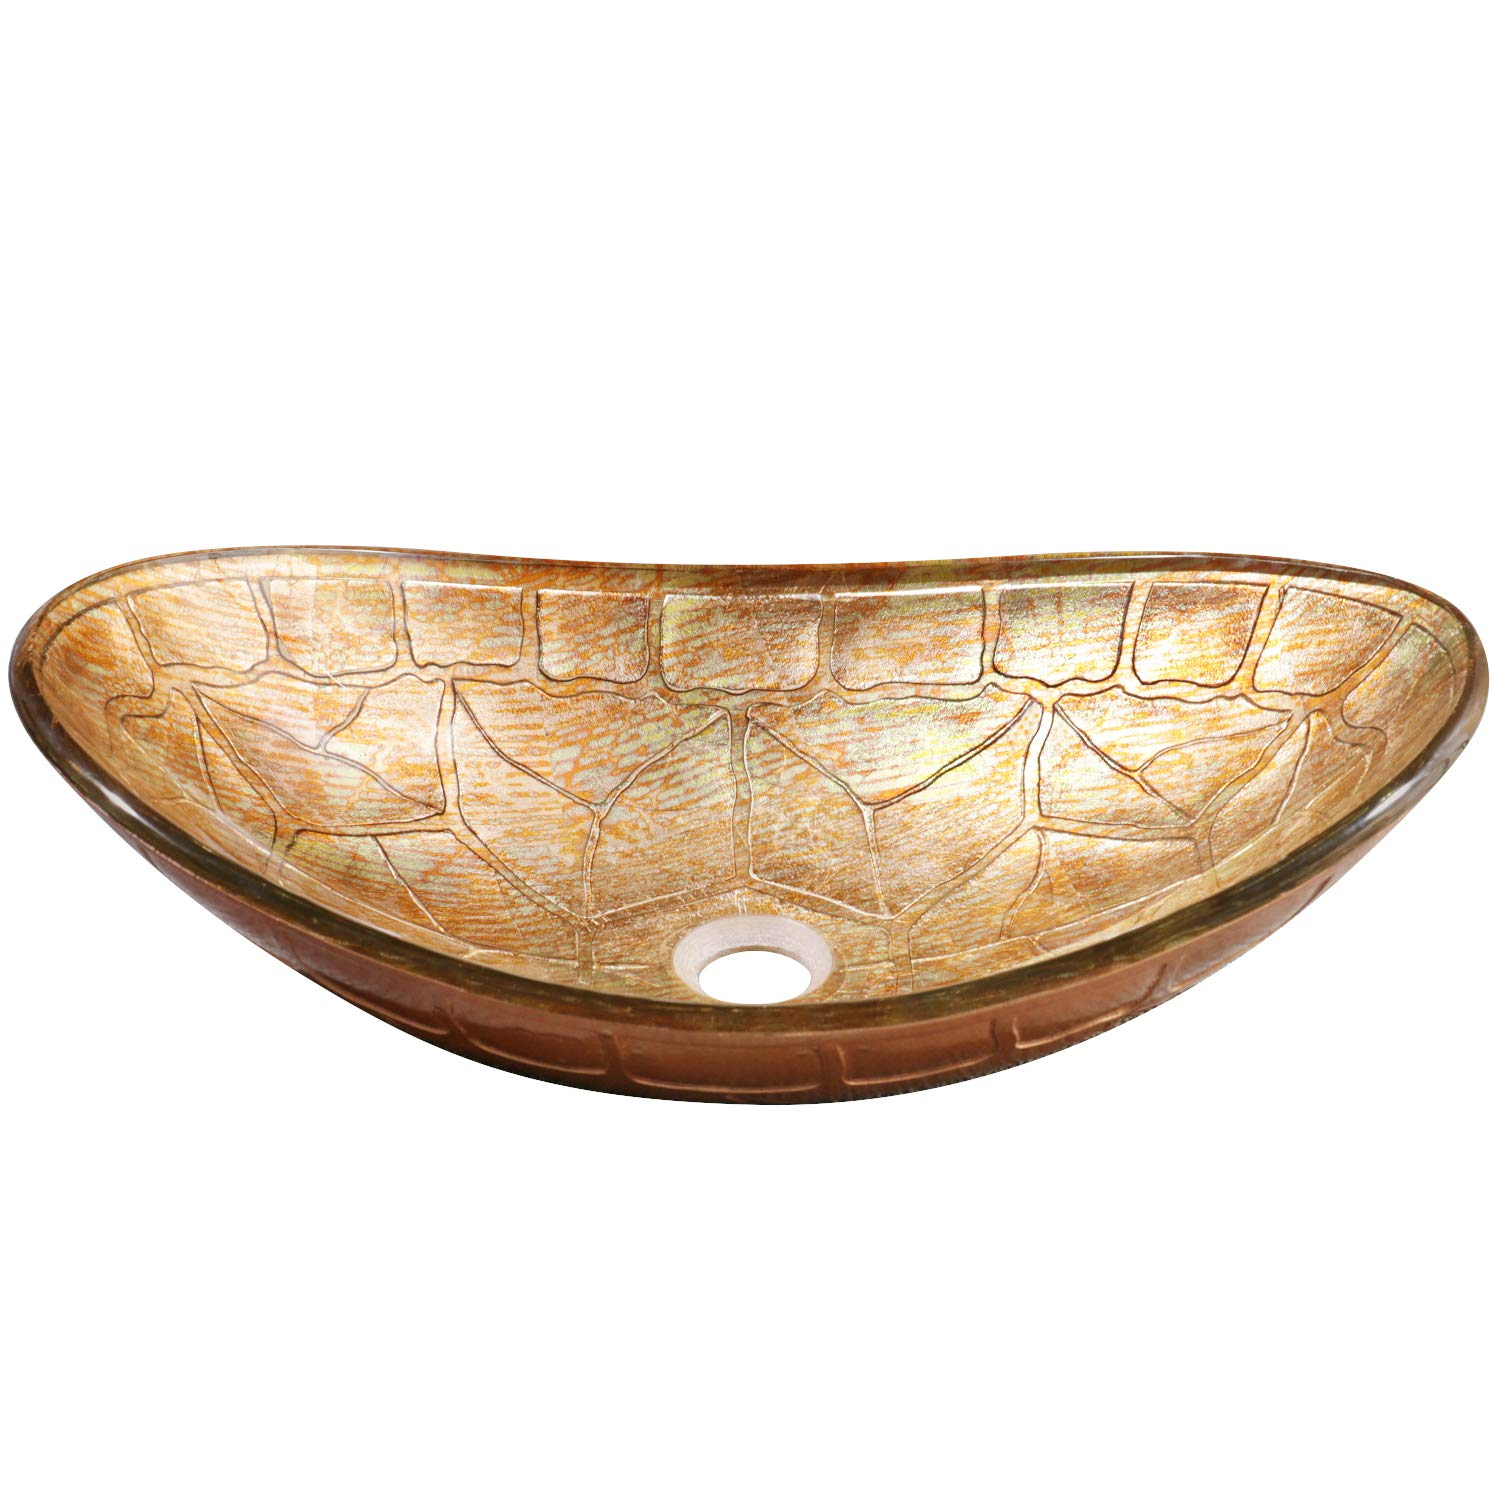 Enbol EGS-L0082 Unique Oval Tortoise Shell Pattern Artistic Tempered Glass Bathroom Above Counter Vessel Vanity Sink Bowl Top Wash Basin Combo with Mounting Ring and Pop up Drain